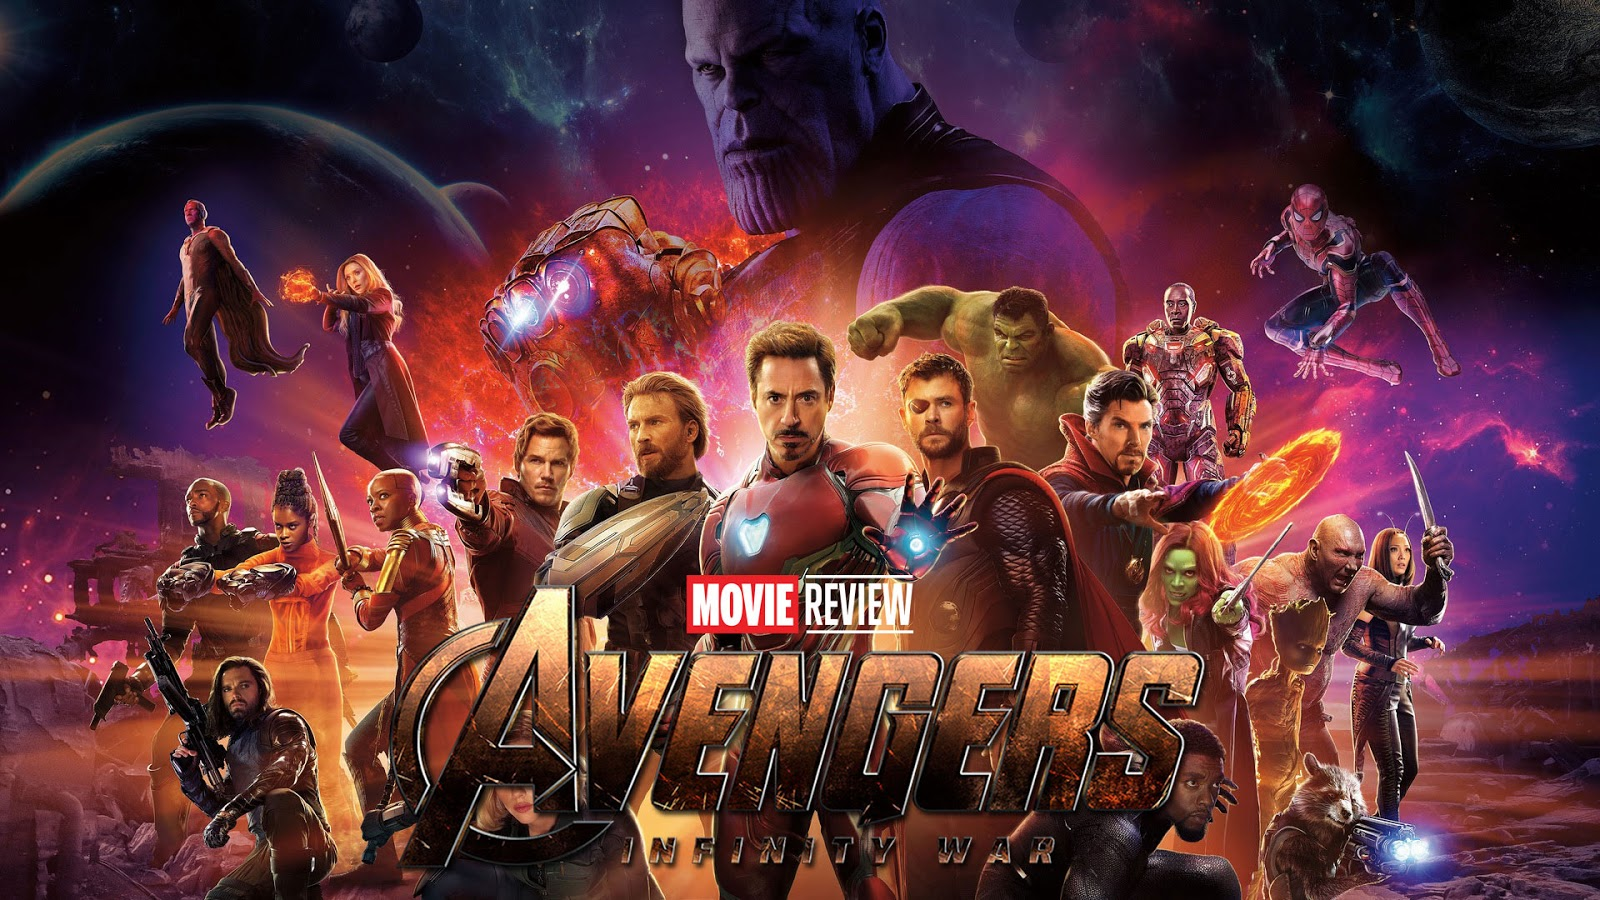 movie review Marvel's Avengers: Infinity War podcast